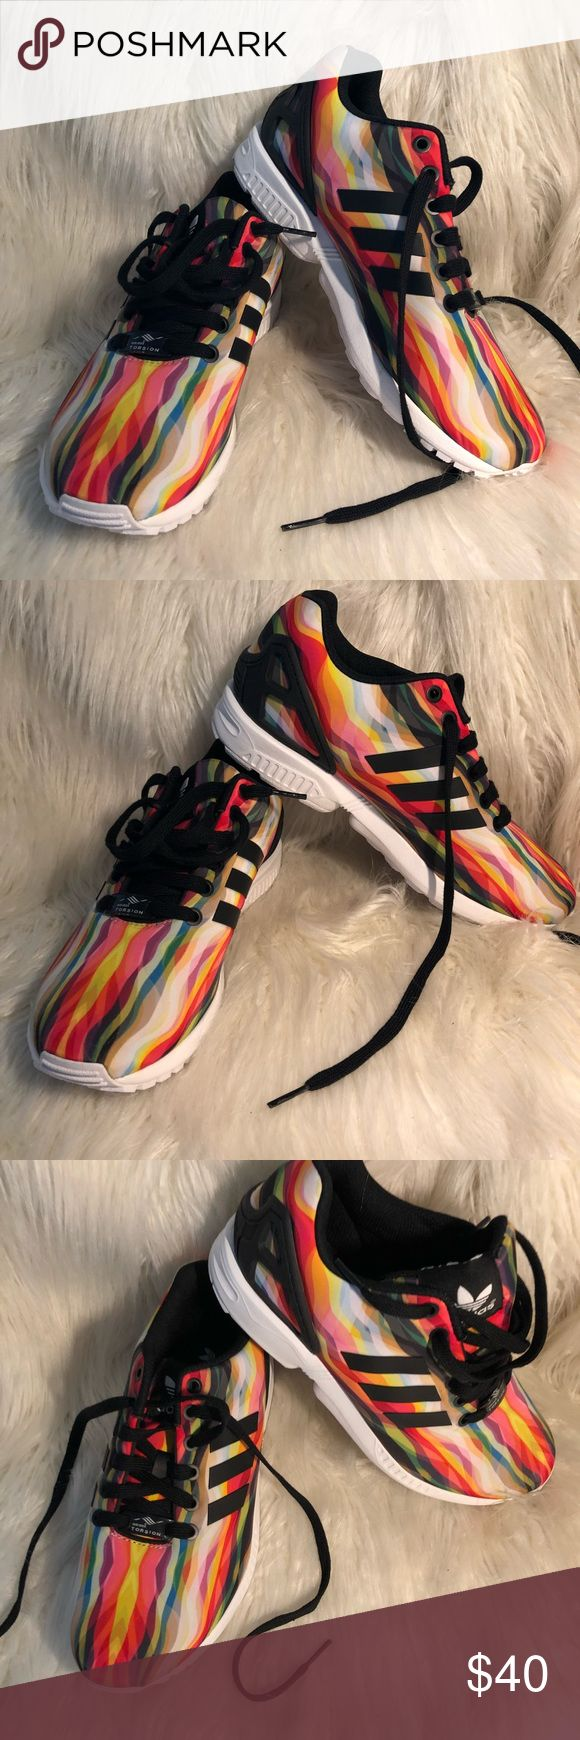 Adidas Torsion ZX Flux Women's athletic new with tags adidas Shoes Athletic Shoes